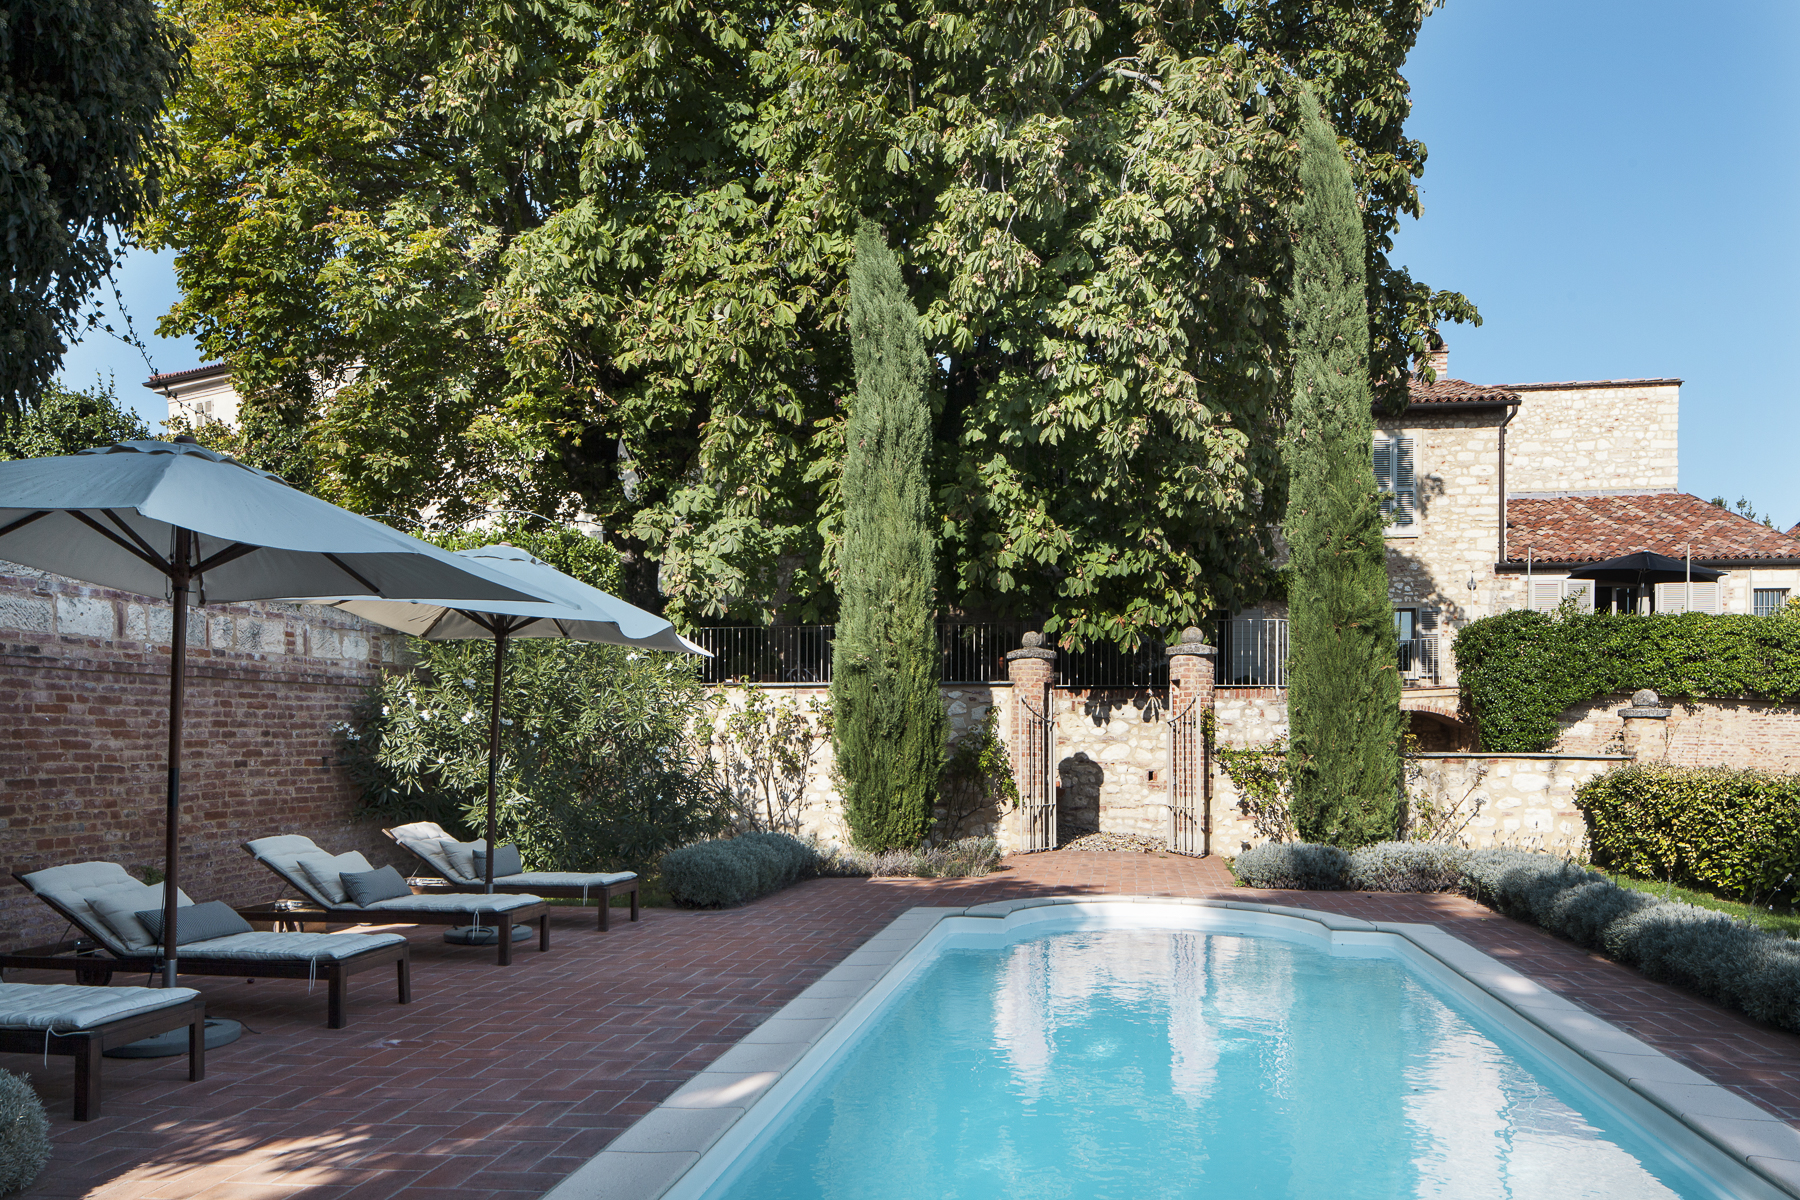 Additional photo for property listing at Refined villa in Monferrato with a swimming pool Cella Monte, Alessandria Italie